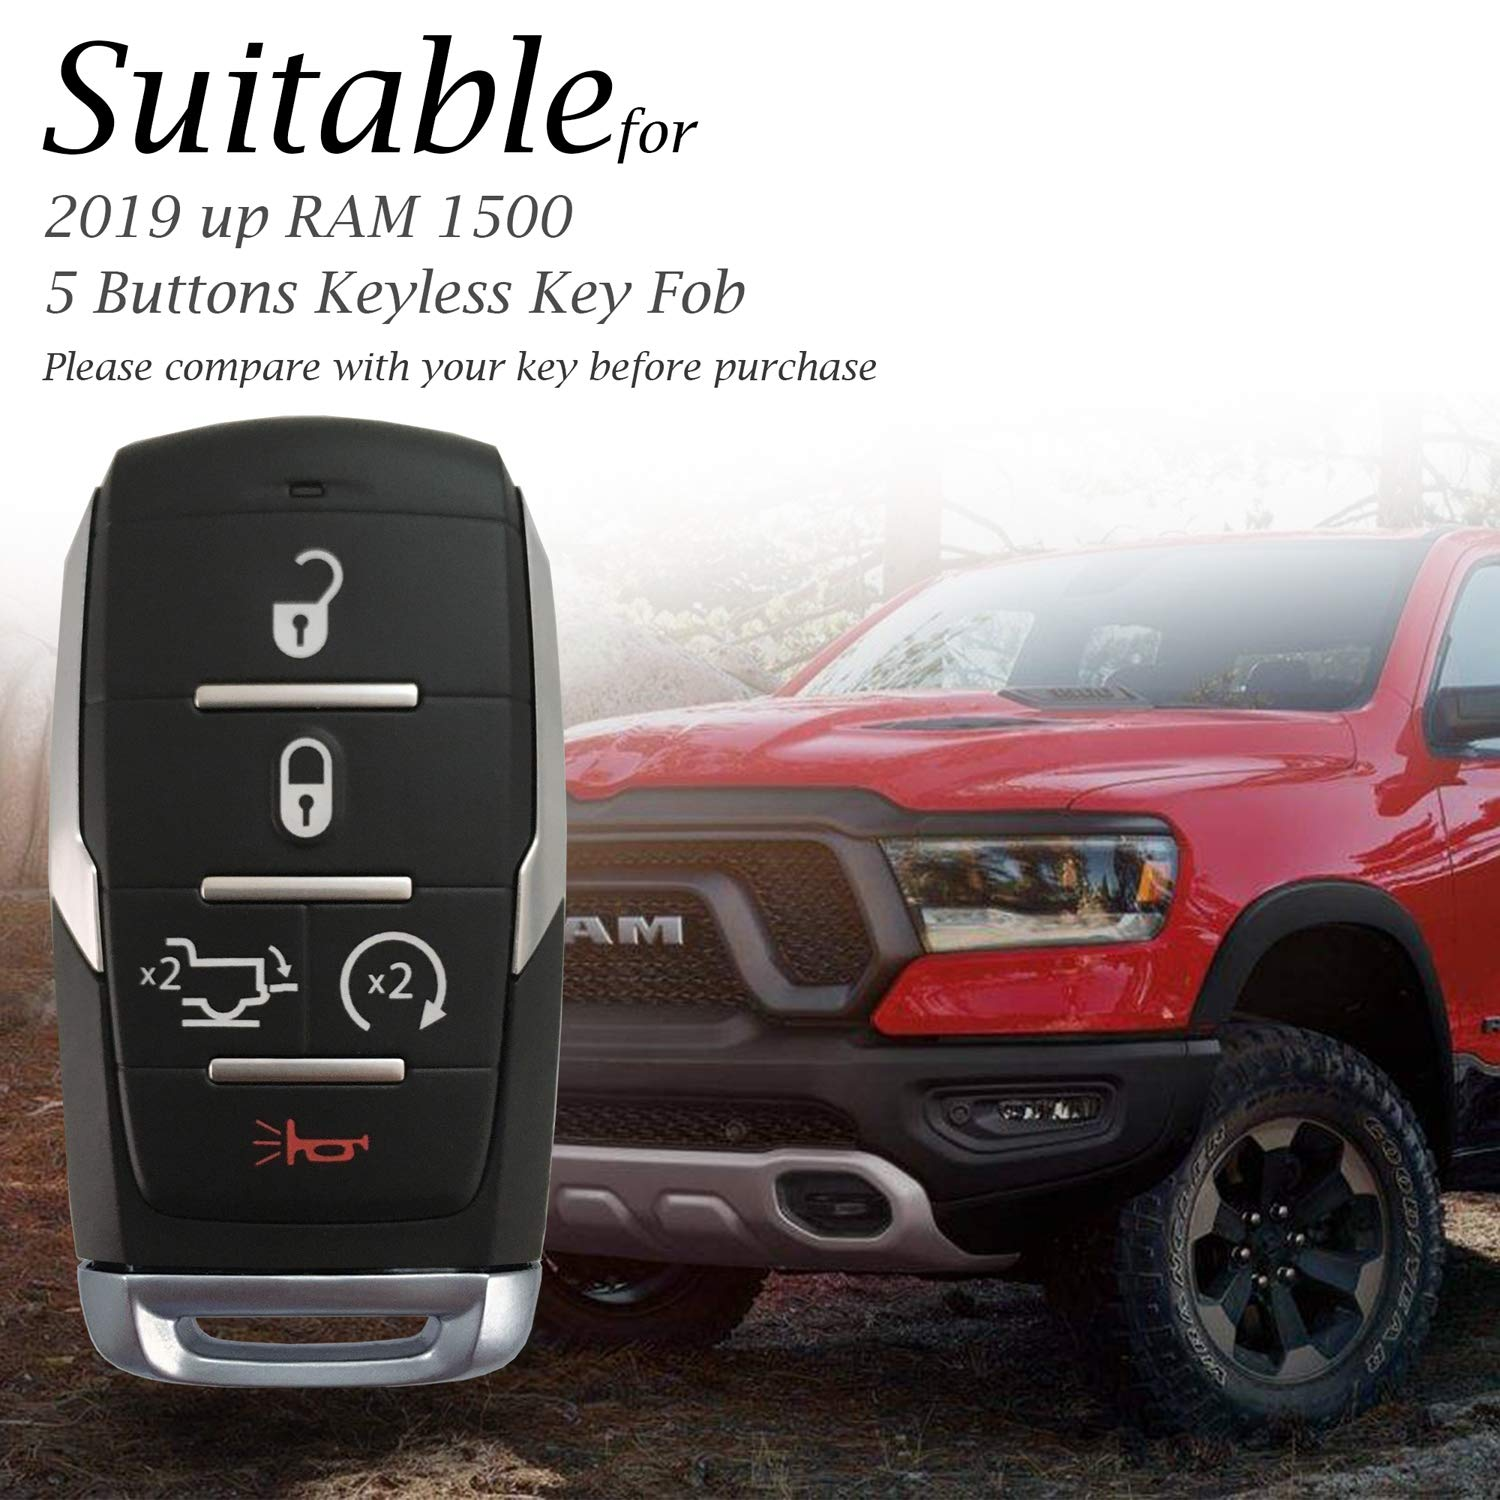 6-Button, Red Vitodeco Genuine Leather Keyless Entry Remote Control Smart Key Case Cover with Leather Key Chain for 2019 RAM 1500